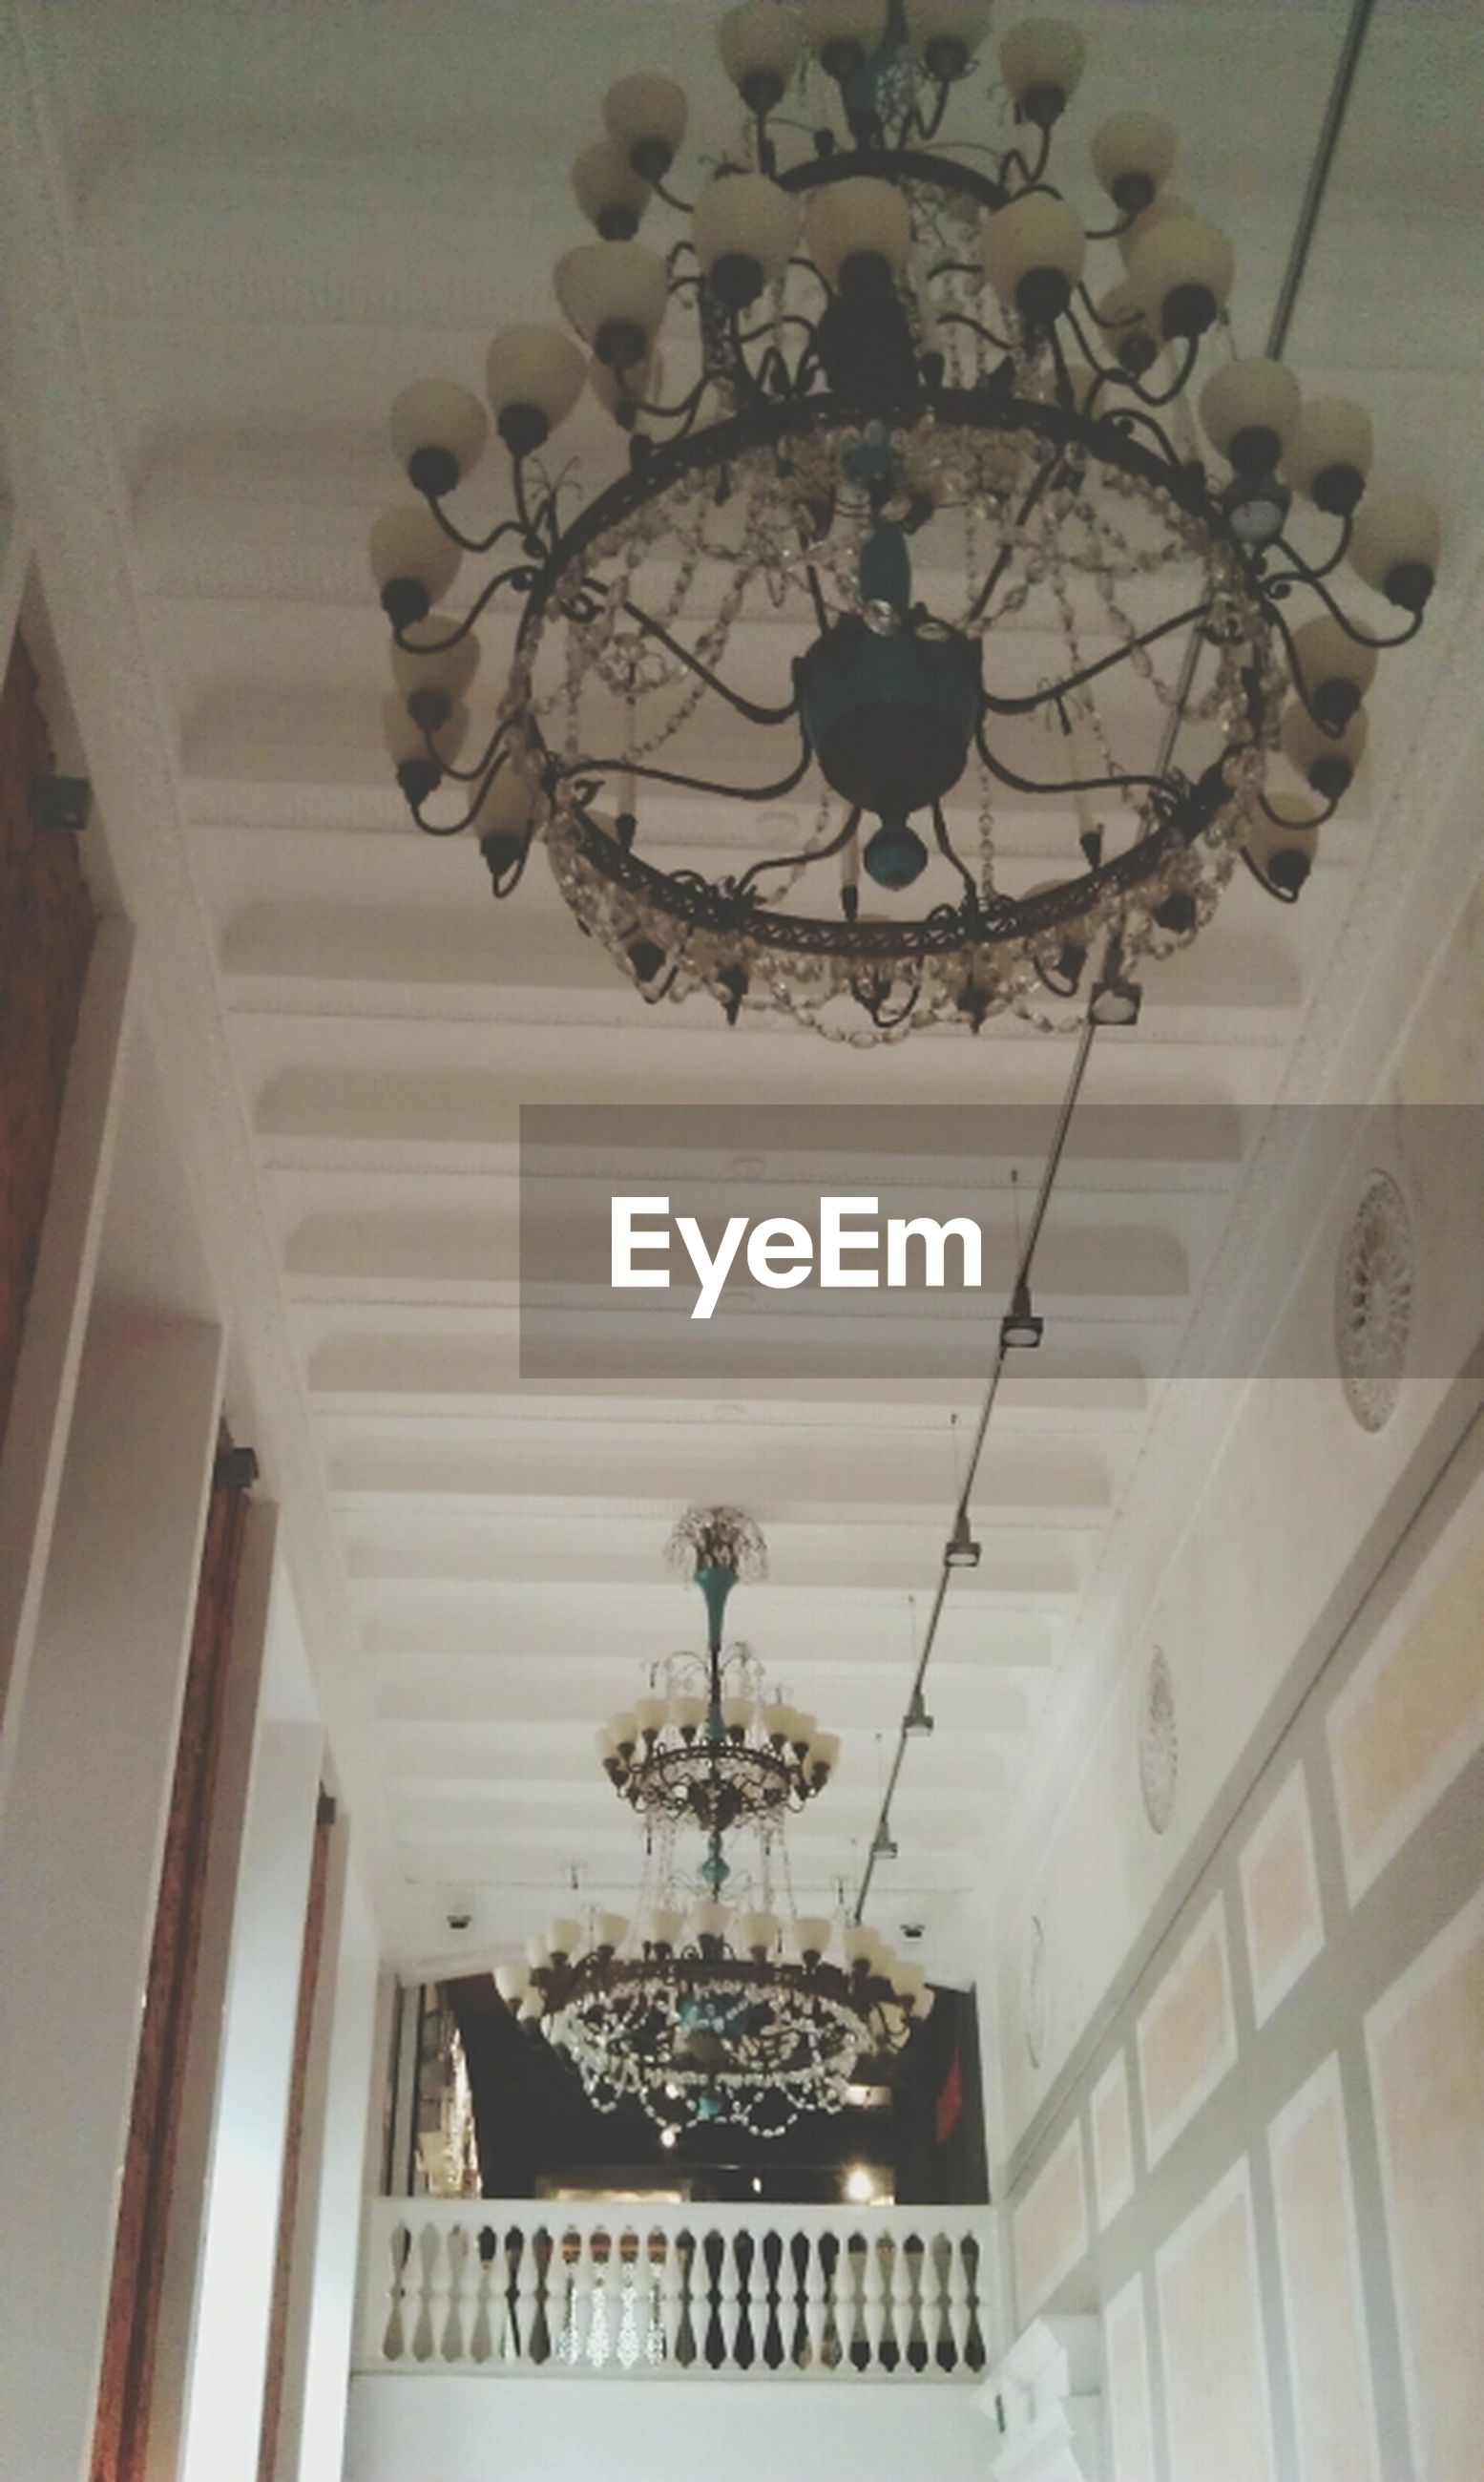 indoors, ceiling, chandelier, lighting equipment, hanging, low angle view, illuminated, decoration, architecture, electric lamp, built structure, electric light, ornate, pendant light, hanging light, design, electricity, home interior, luxury, directly below